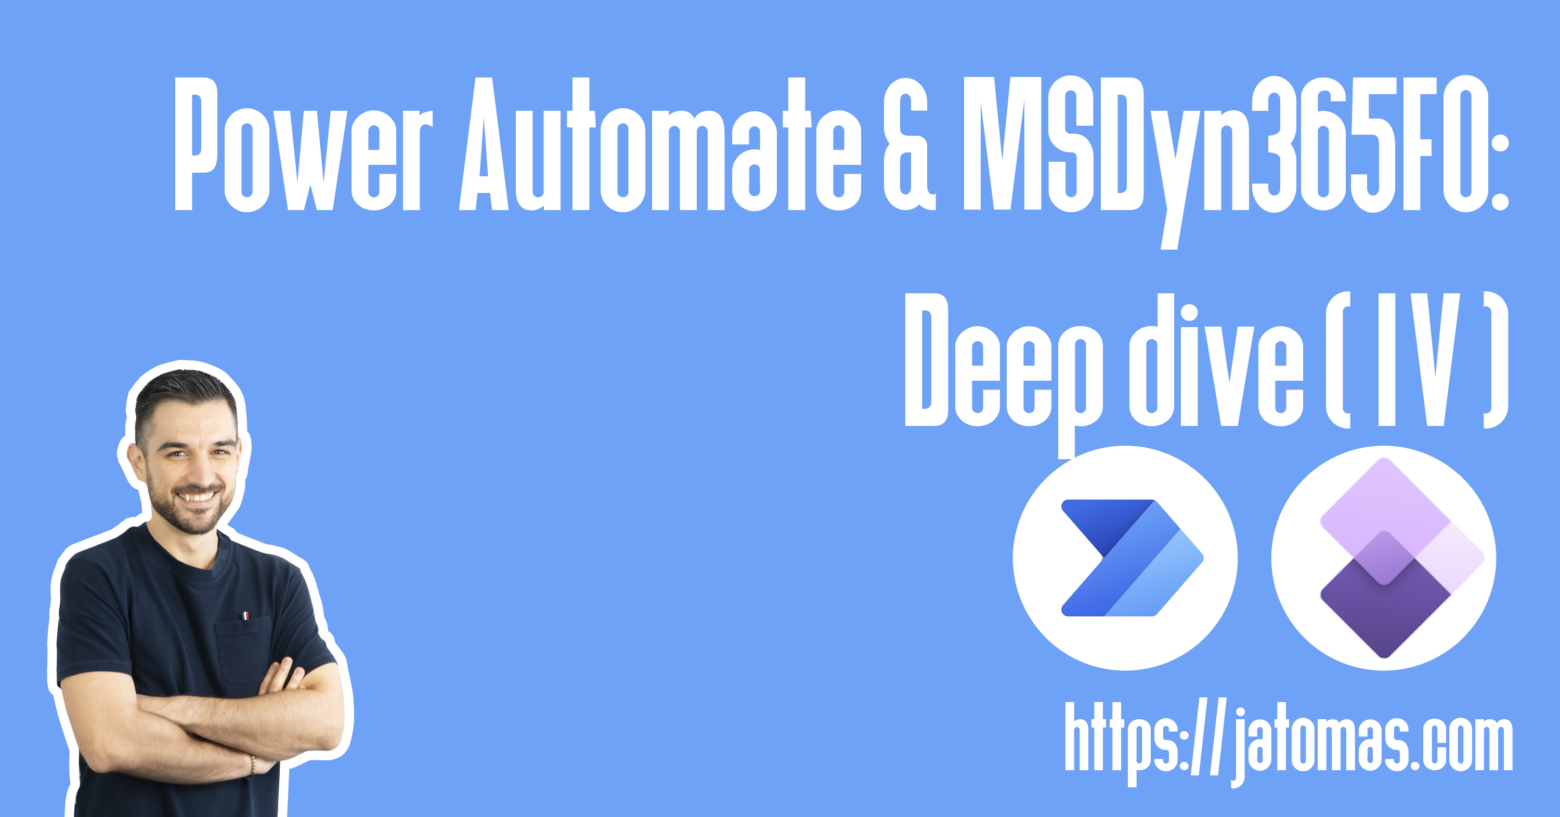 Power Automate & MSDyn365FO: Deep dive (IV)